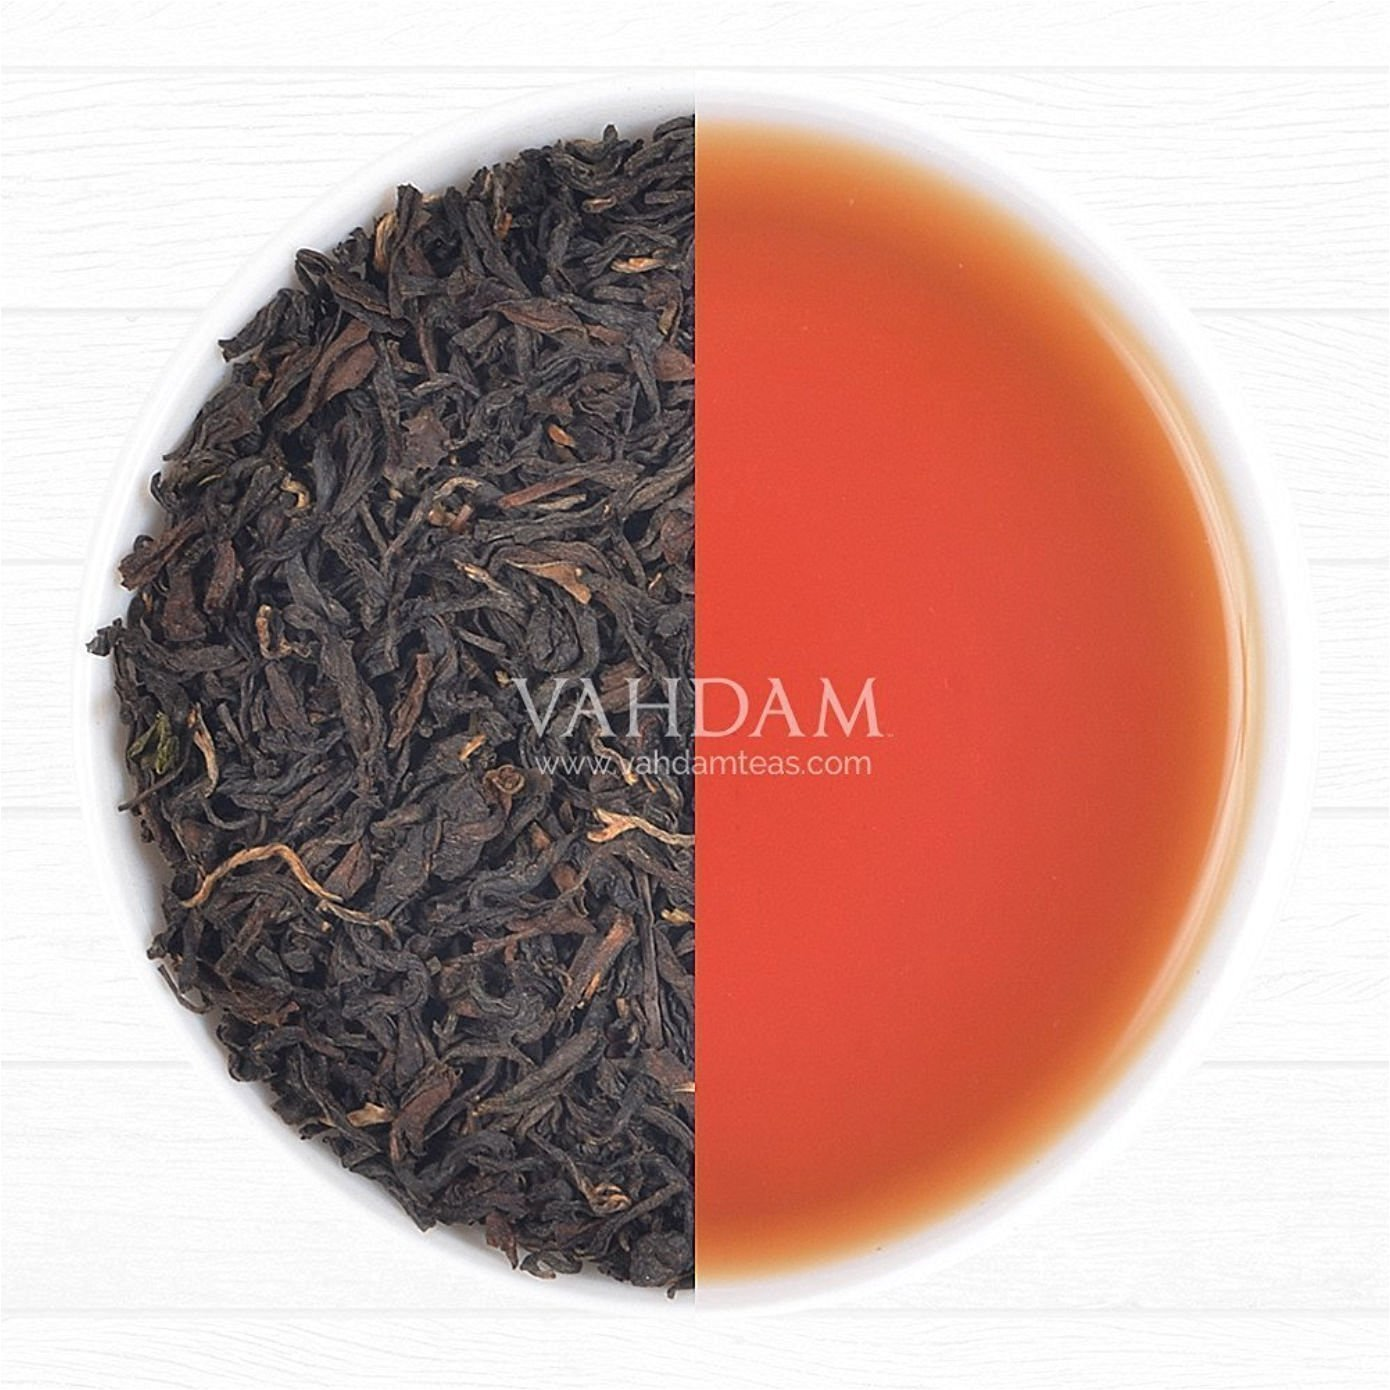 Color of VAHDAM oolong tea